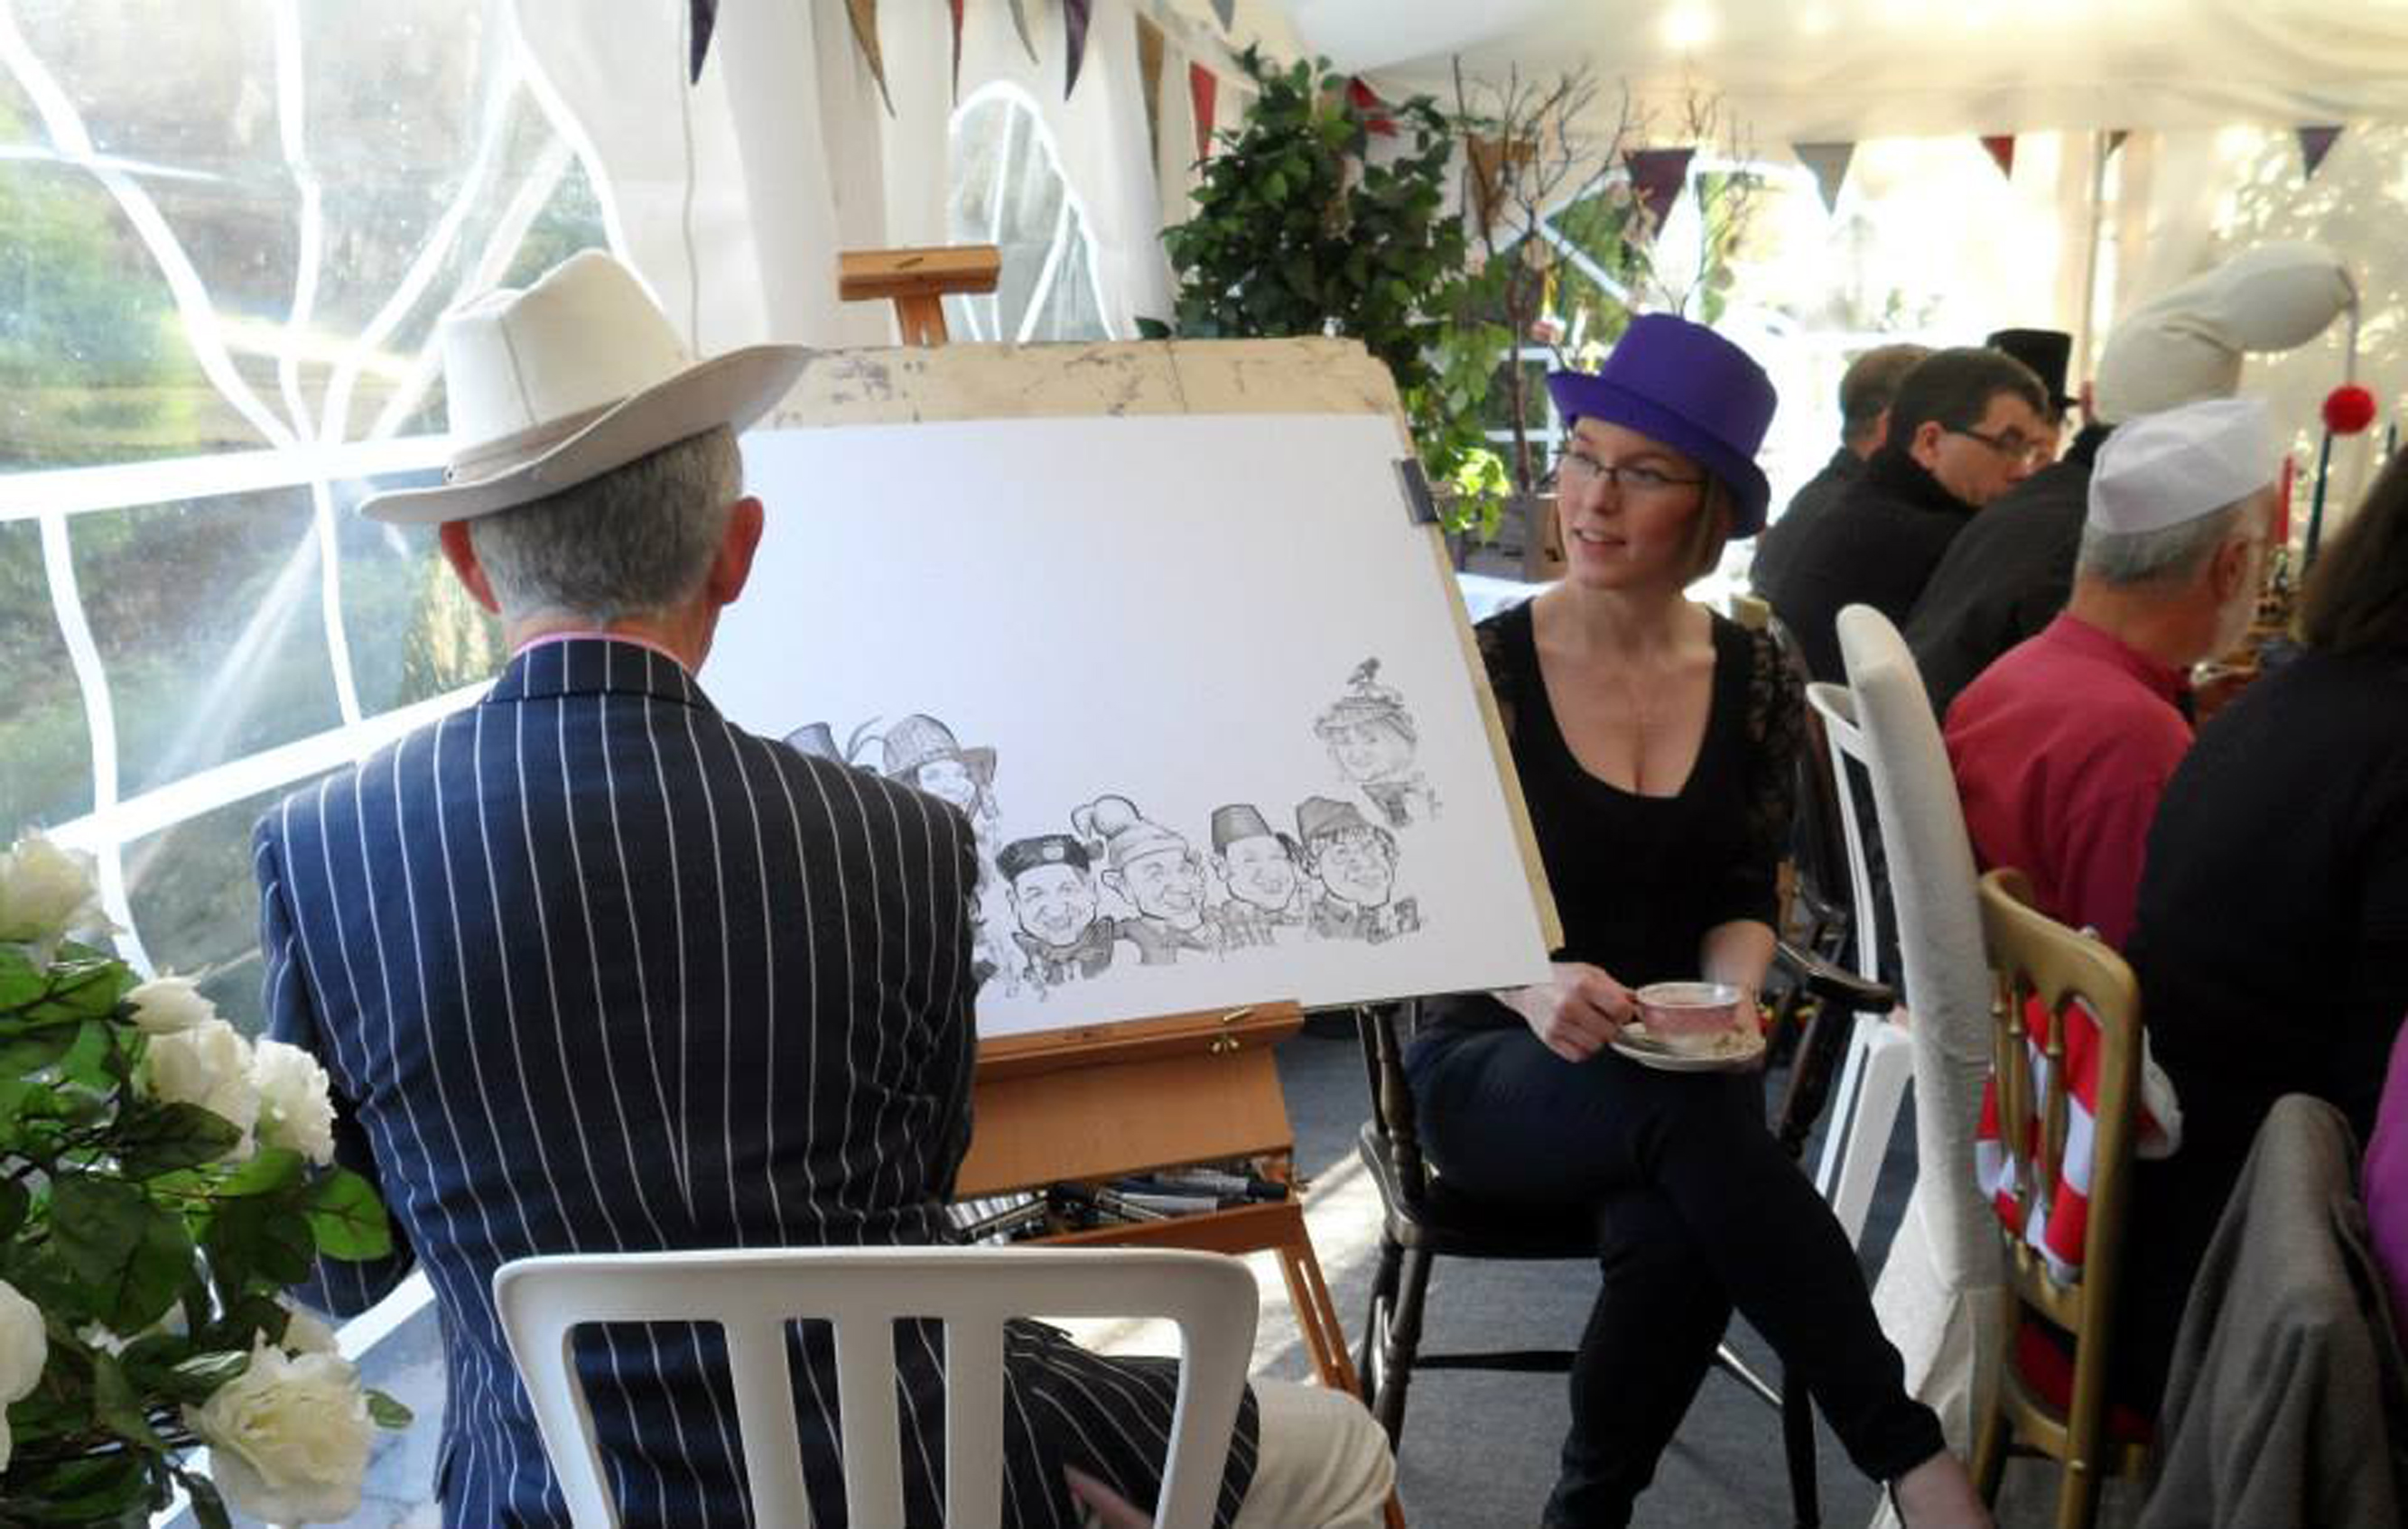 Chris caricature artist at Mad Hatters Tea Party 2014